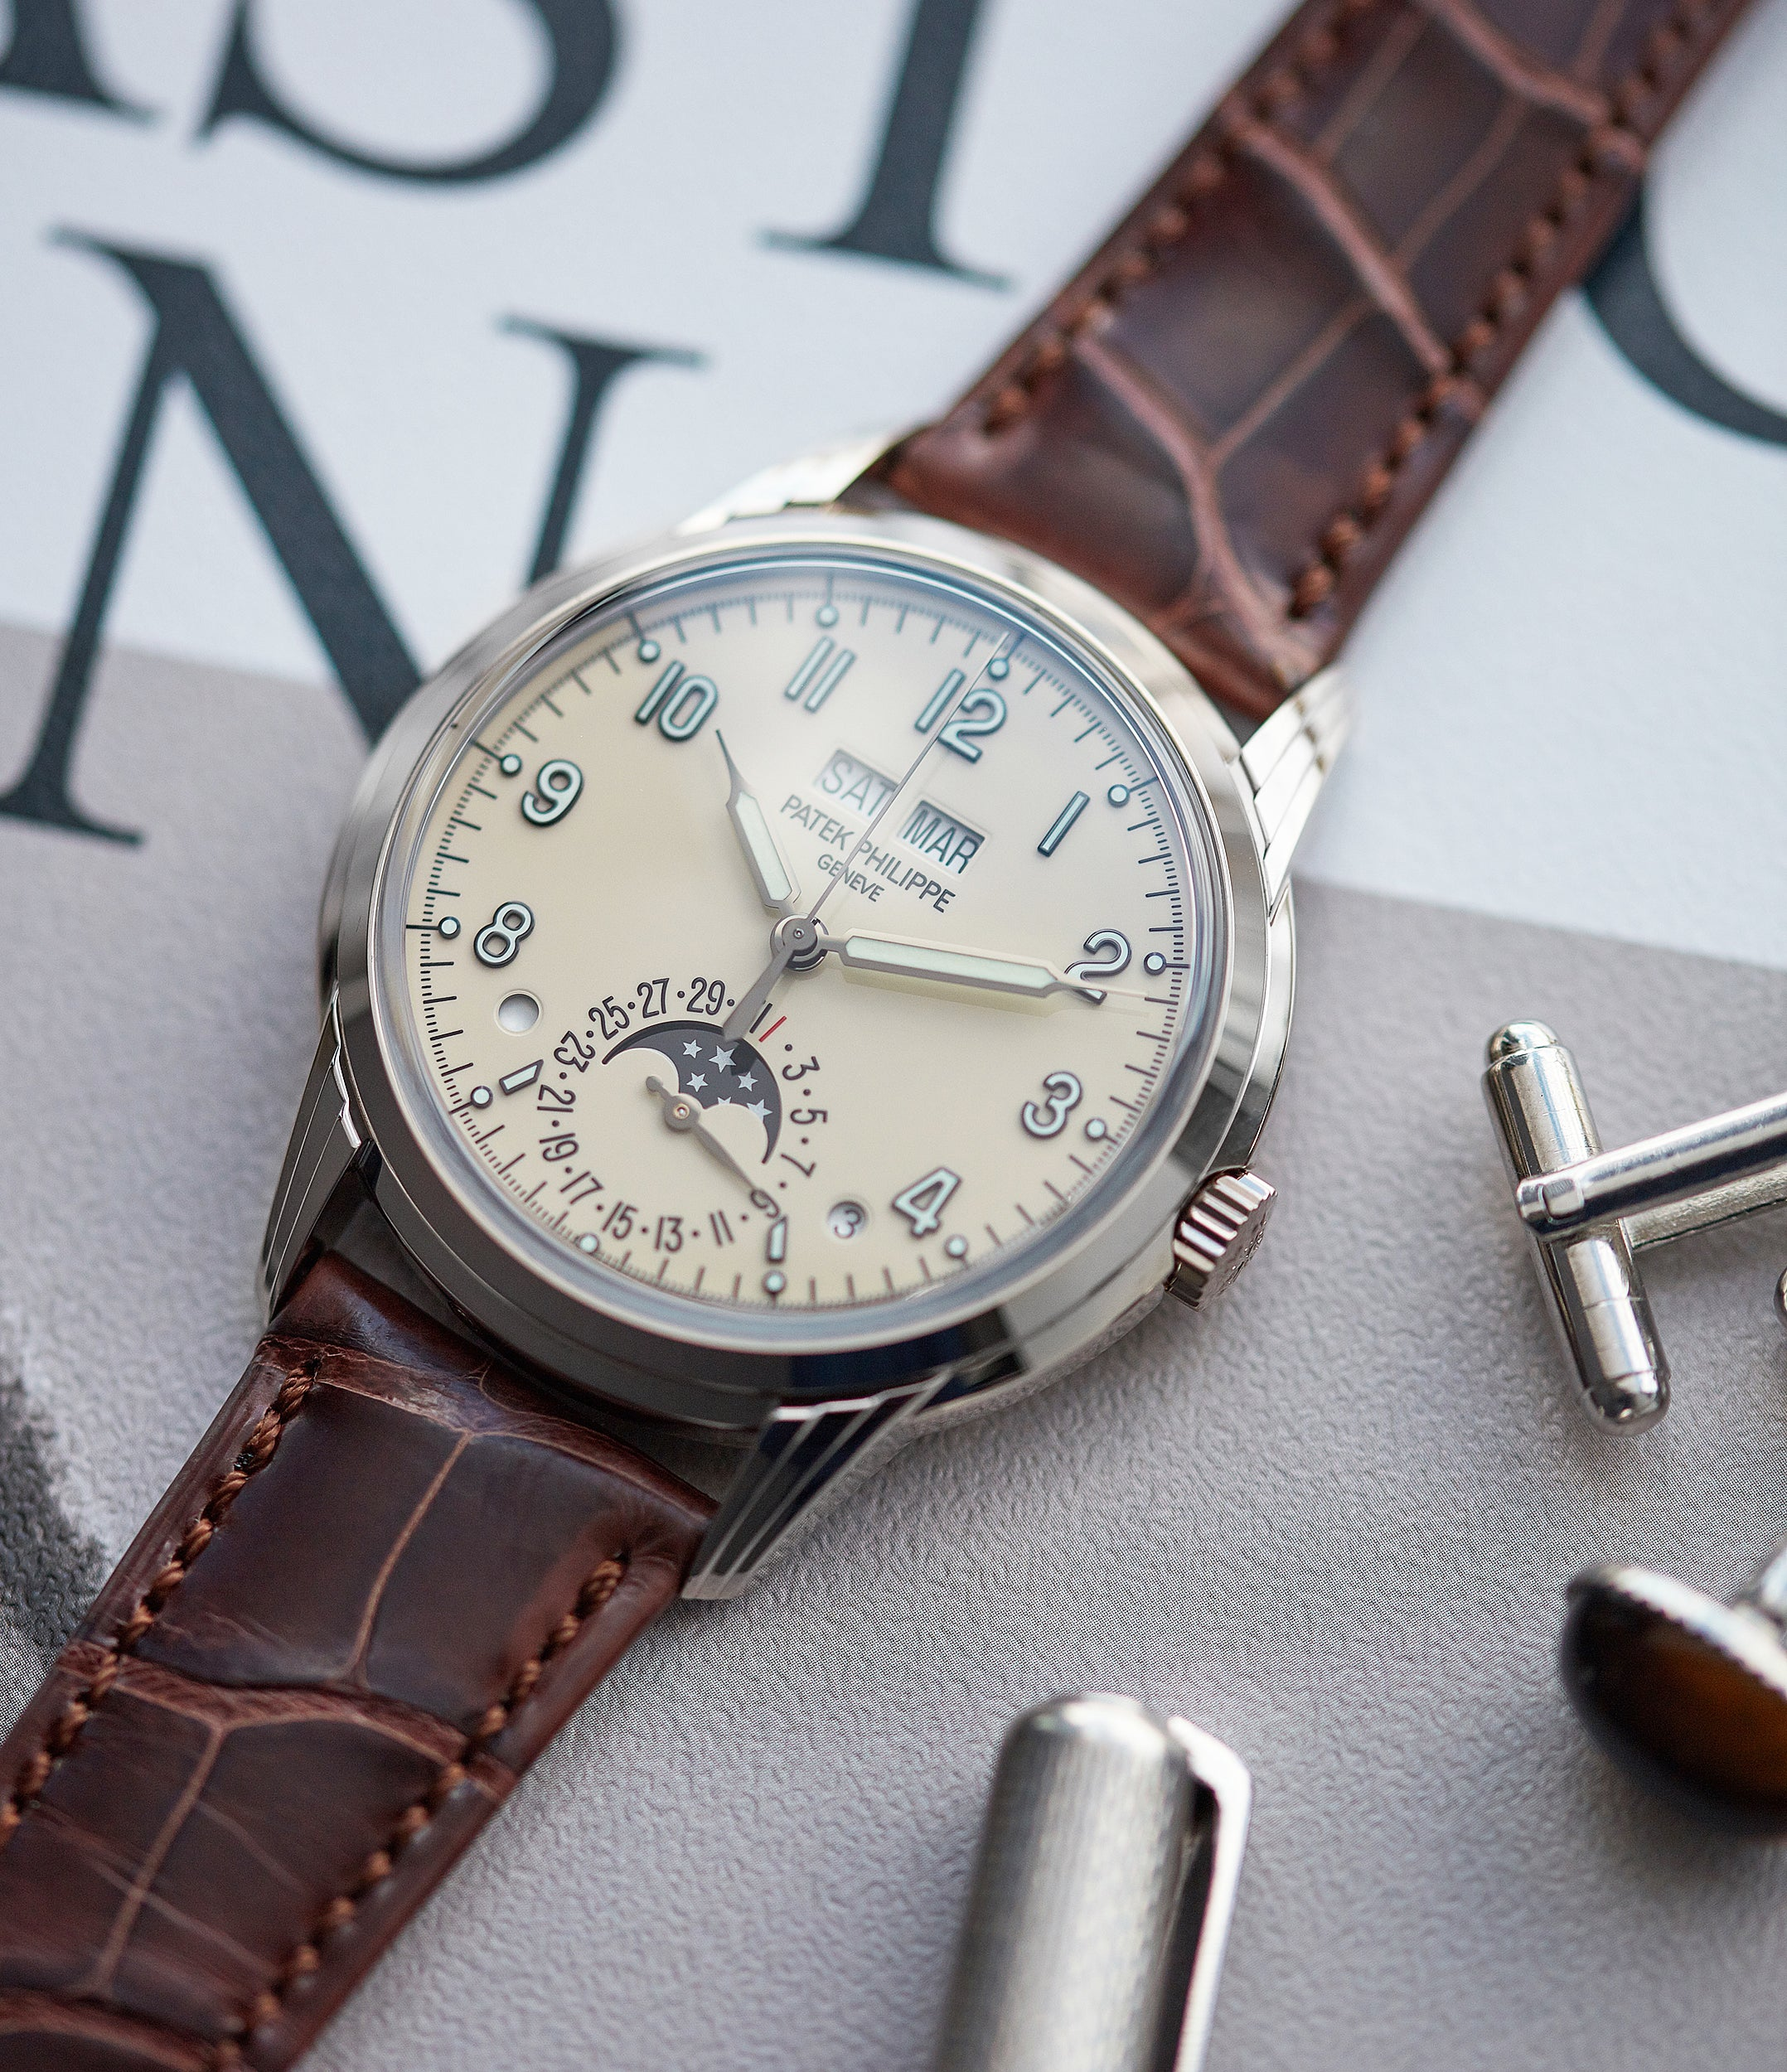 men's classic wristwatch Patek Philippe 5320G-001 Perpetual Calendar white gold watch for sale online at A Collected Man London UK specialist of rare watches